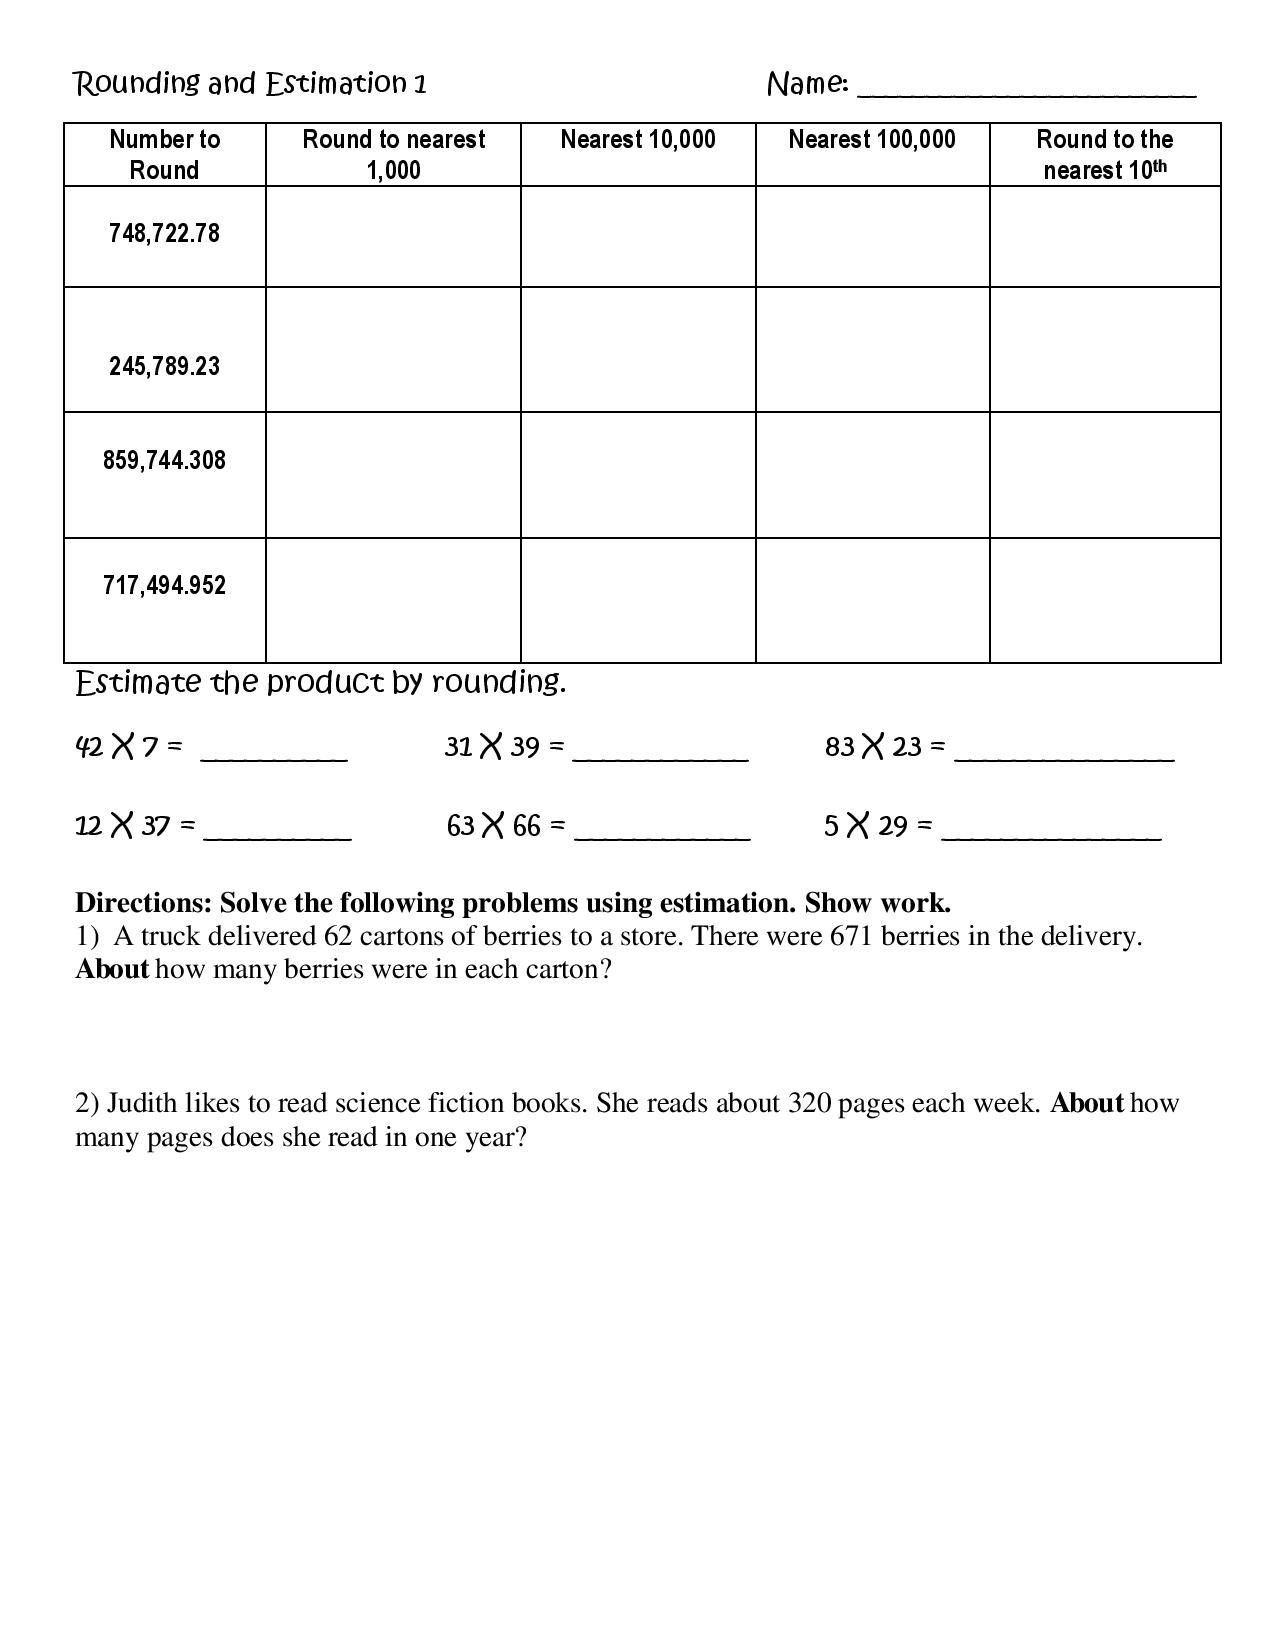 Estimating Quotients Worksheets 5th Grade these Five Worksheets On Rounding and Estimation Involve